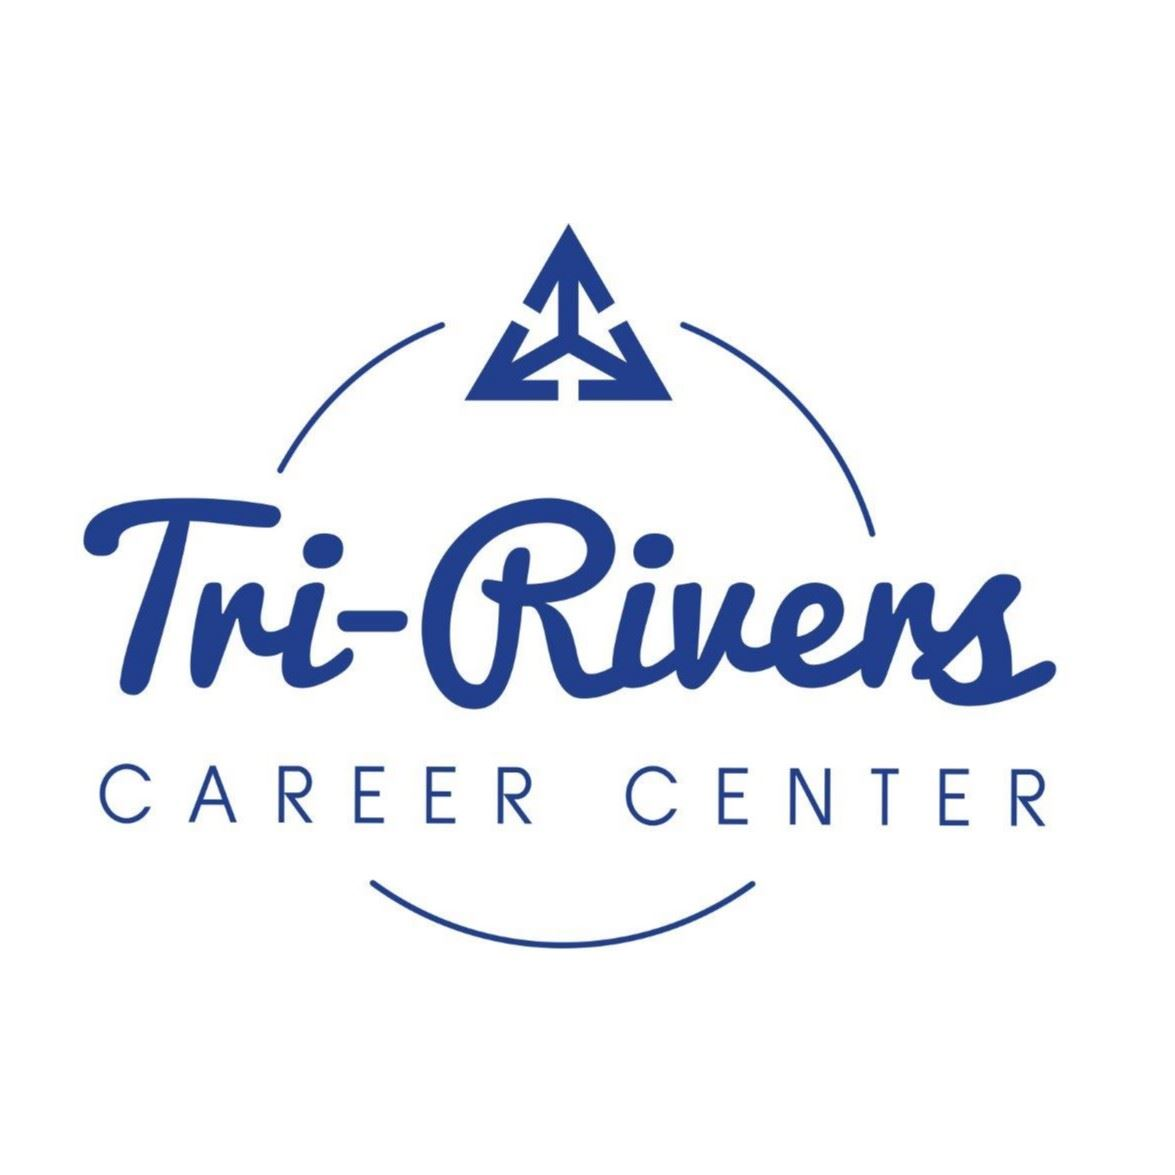 Tri-Rivers Career Center-1